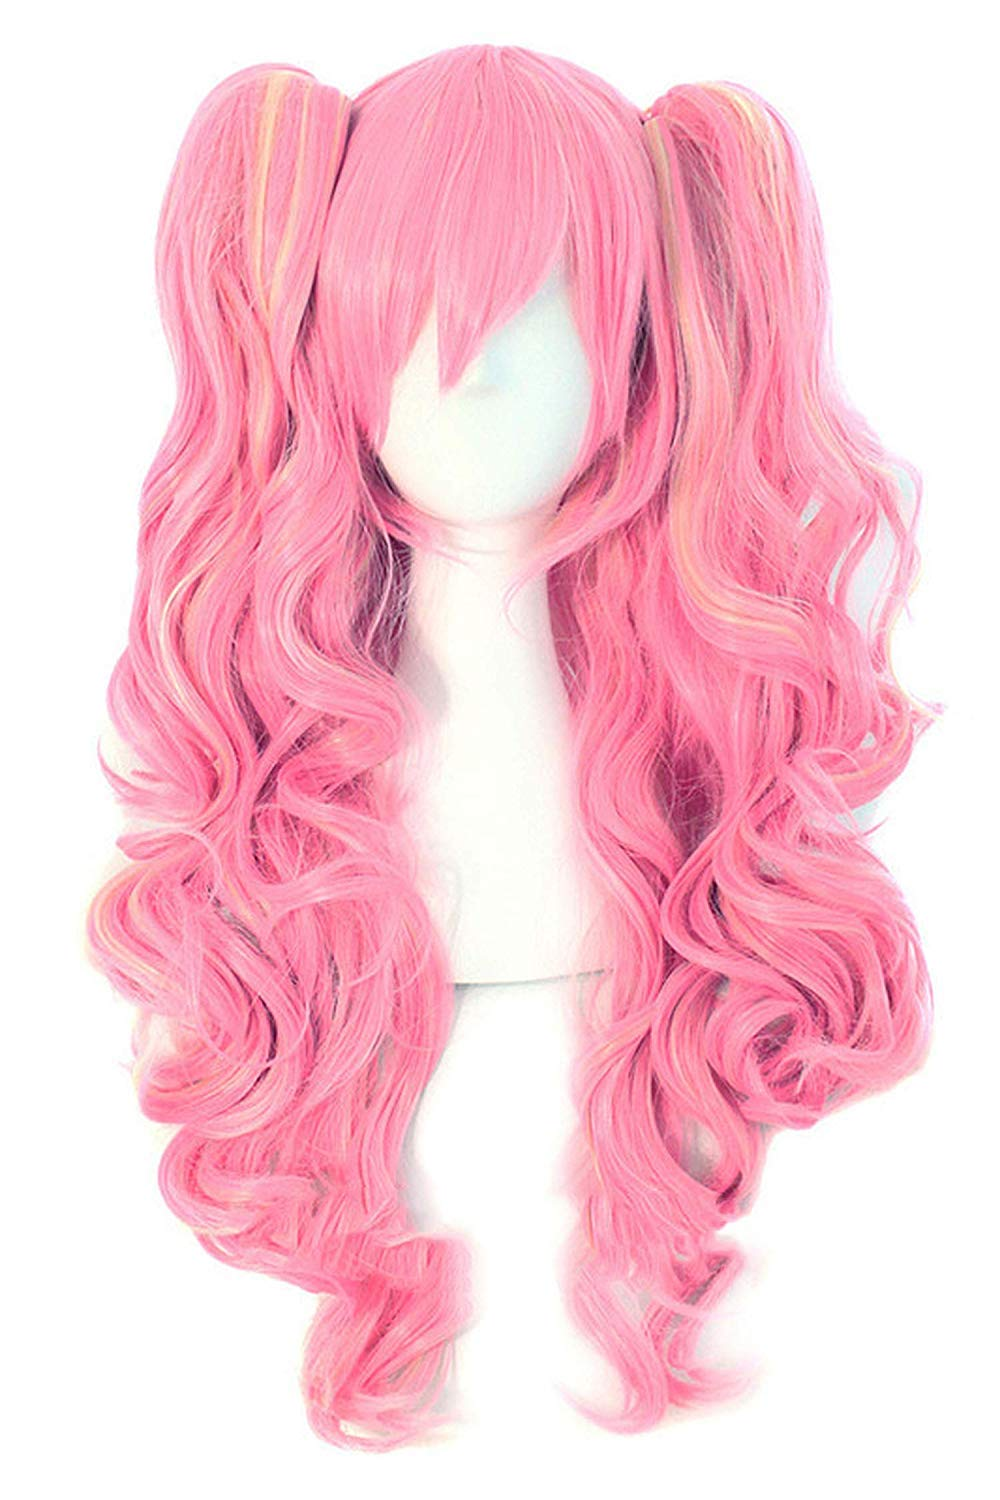 CCVGZ TSHIRT Long Wavy Cosplay Purple Pink 12 Colors Two ponytails Heat Resistant Wigs for Women,#144,26inches